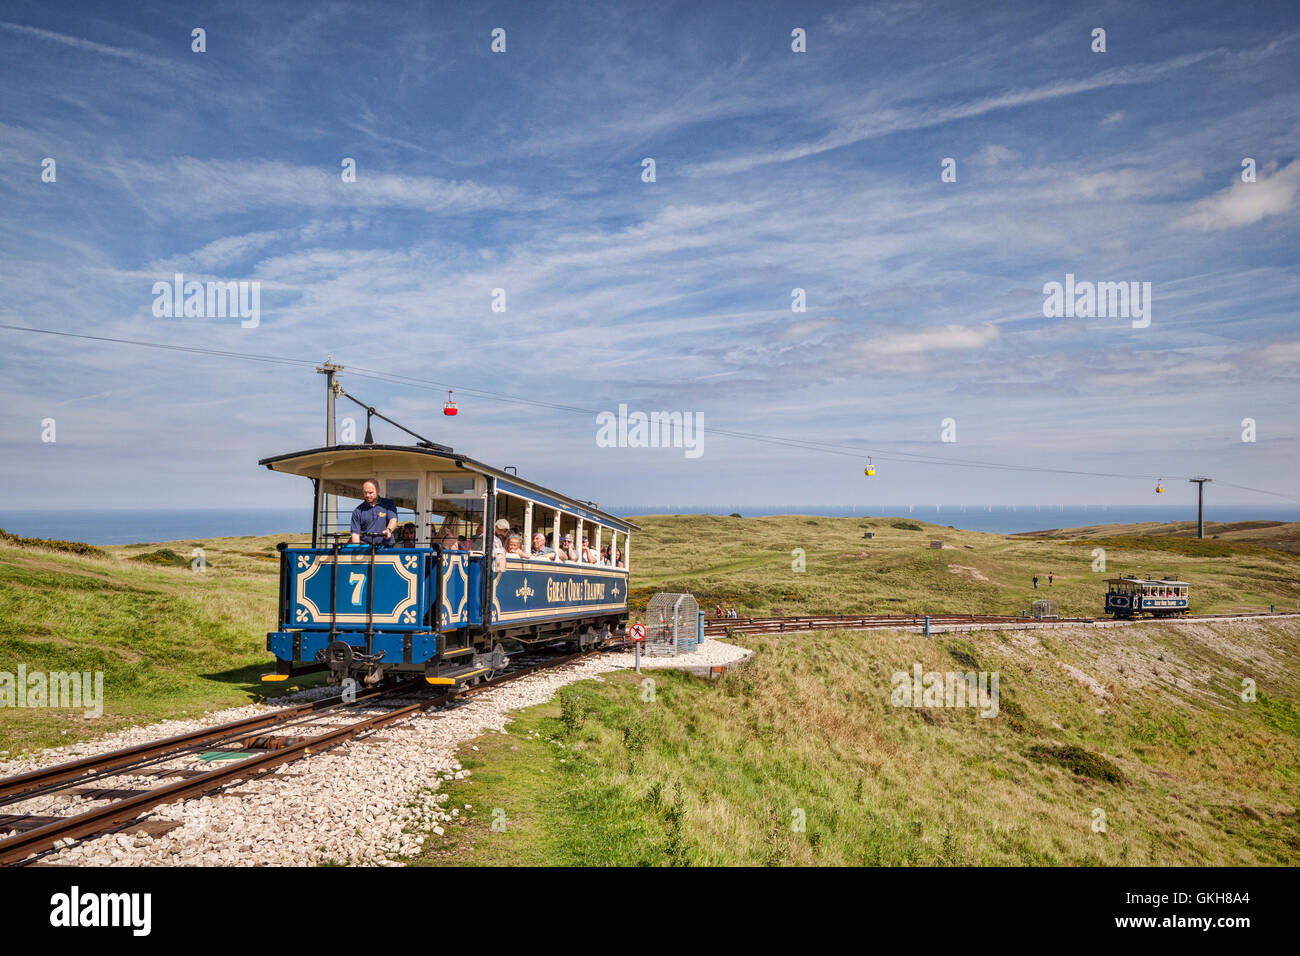 A passenger car of the Great Orme Tramway climbs from the upper passing loop as the descending car continues down, - Stock Image